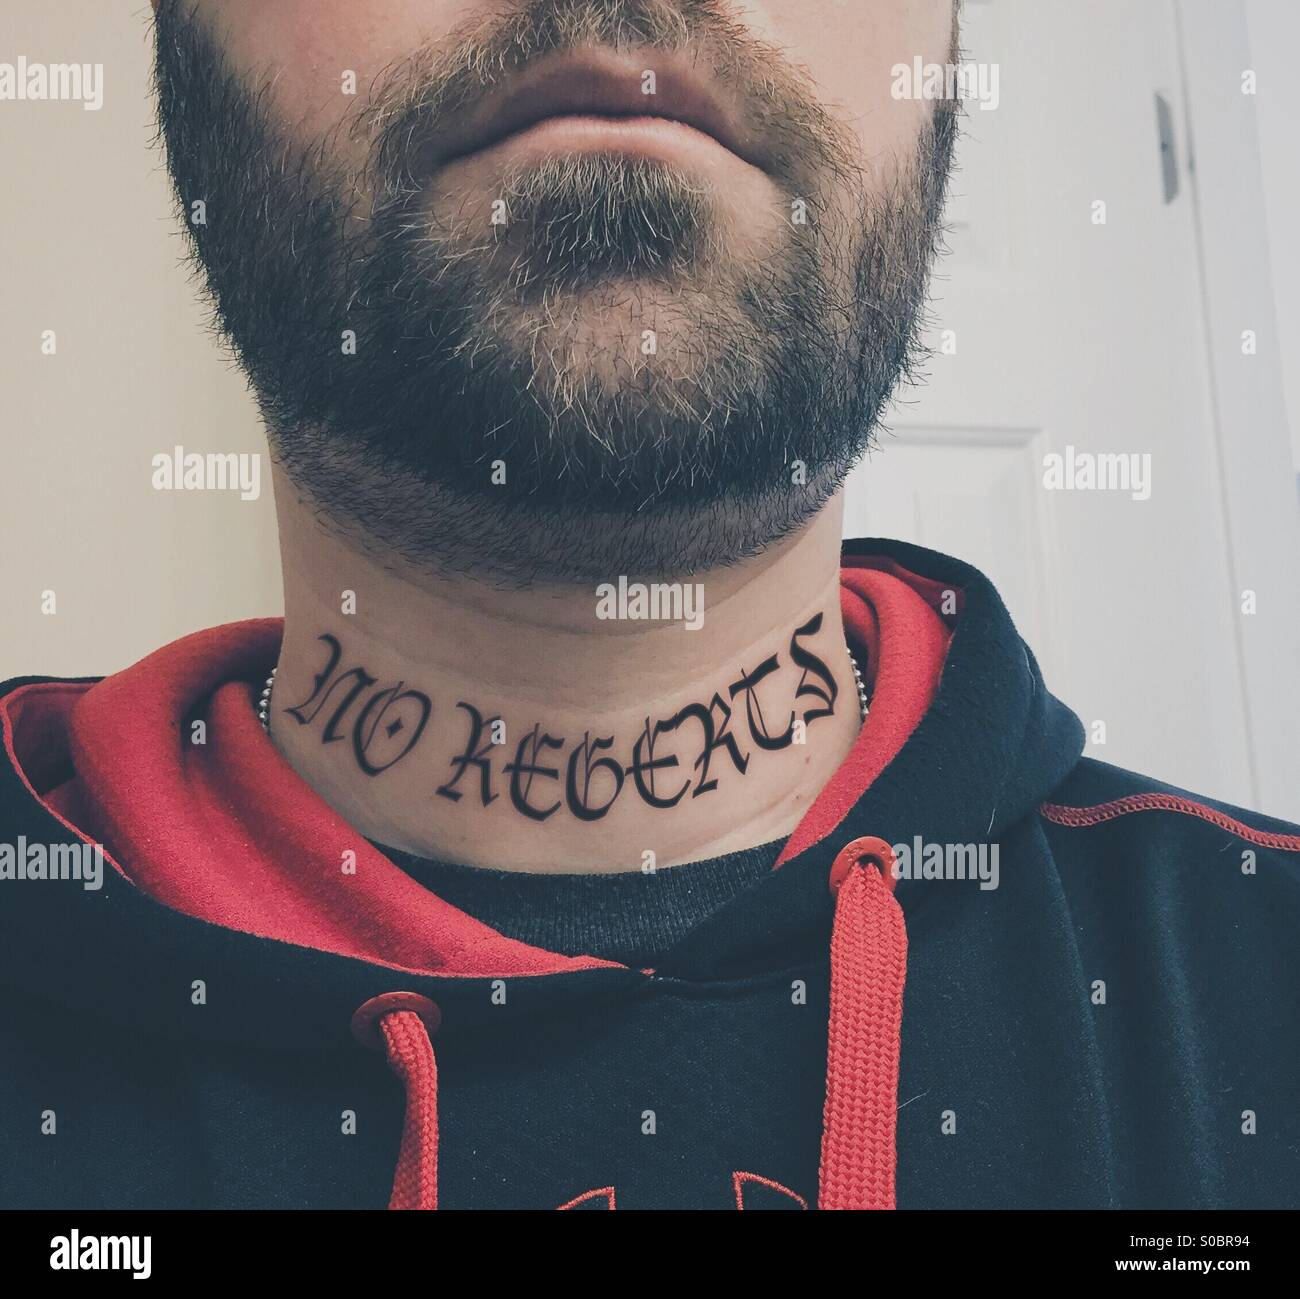 6225f1e06 White adult male with a beard and a misspelled neck tattoo wearing a red  and black